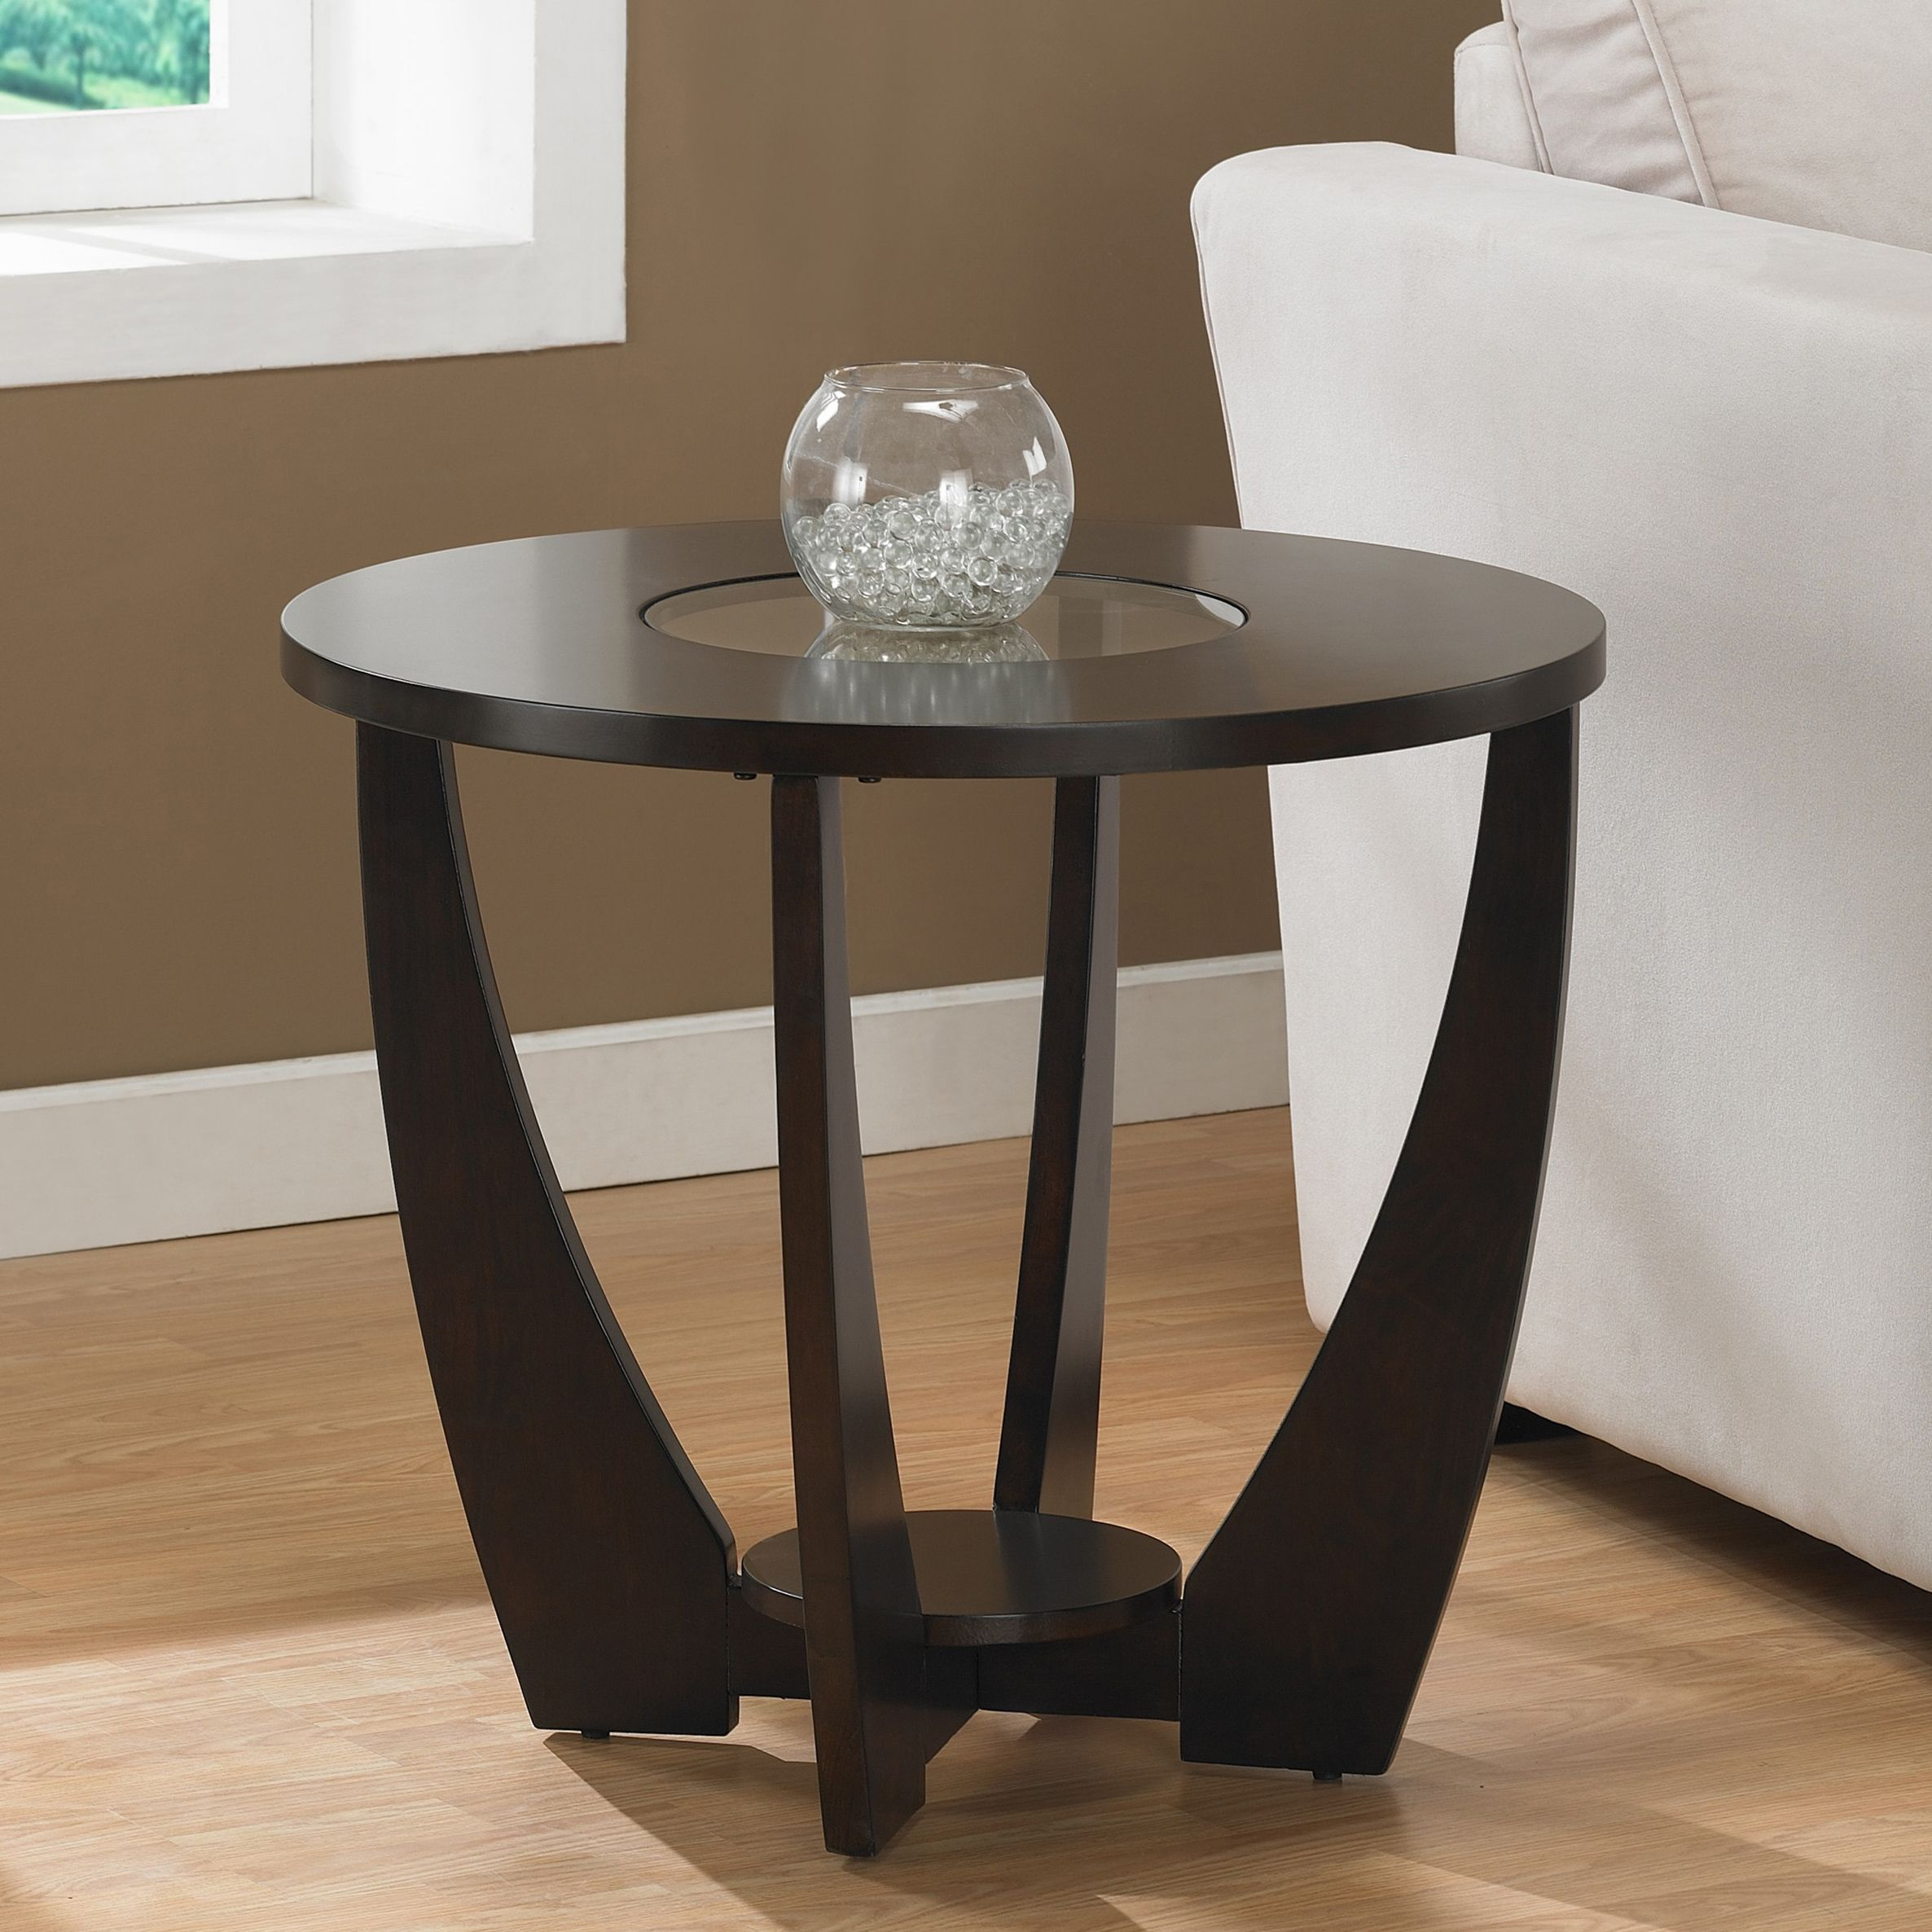 Our Best Living Room Furniture Deals Espresso End Table Coffee Table With Shelf Glass End Tables [ 2372 x 2372 Pixel ]